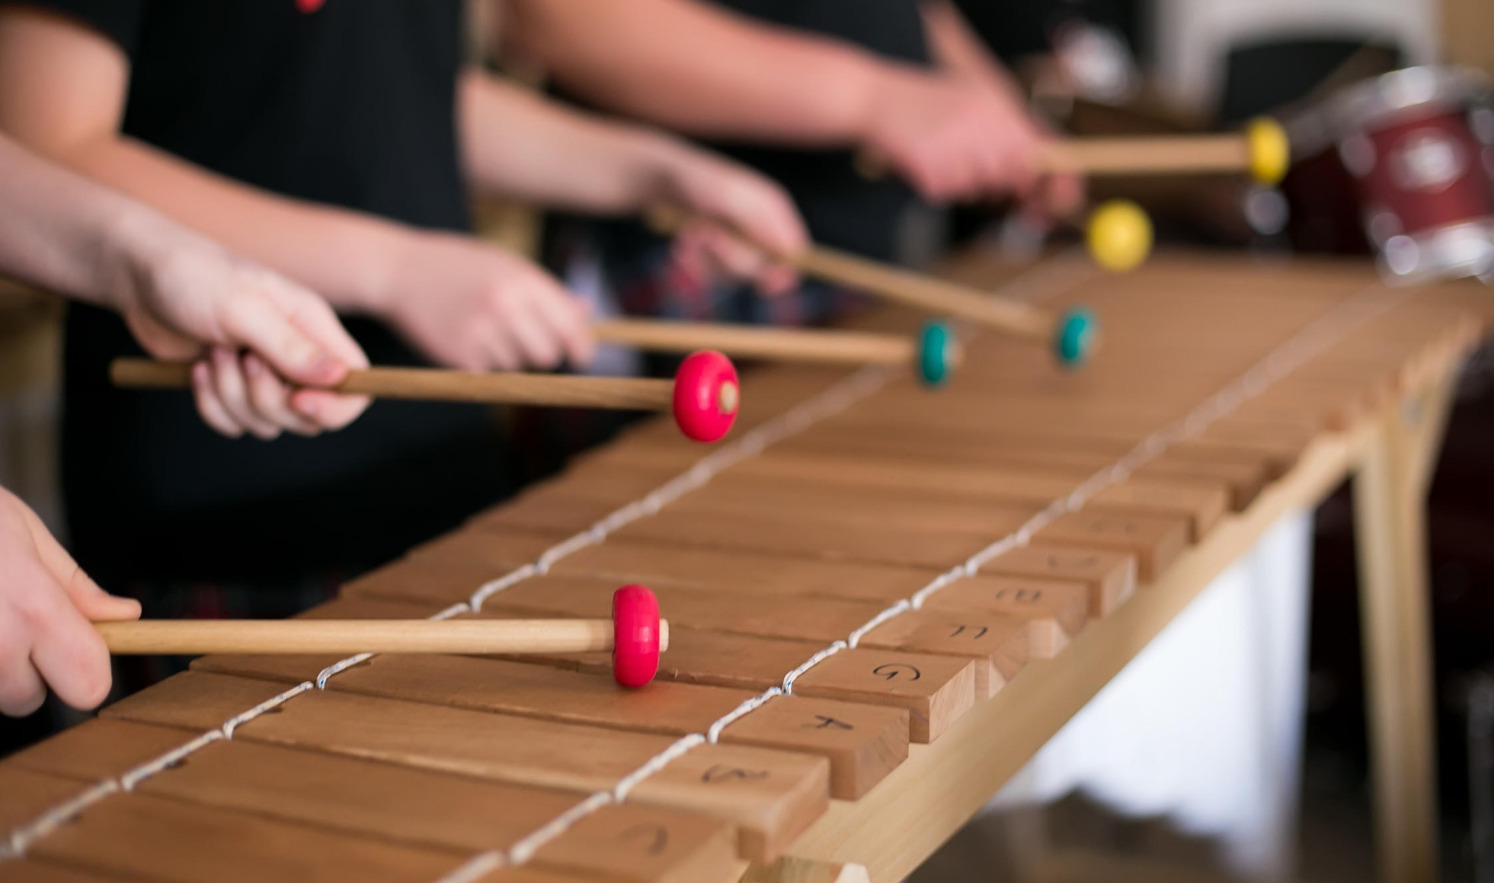 Our main instrument is the marimba